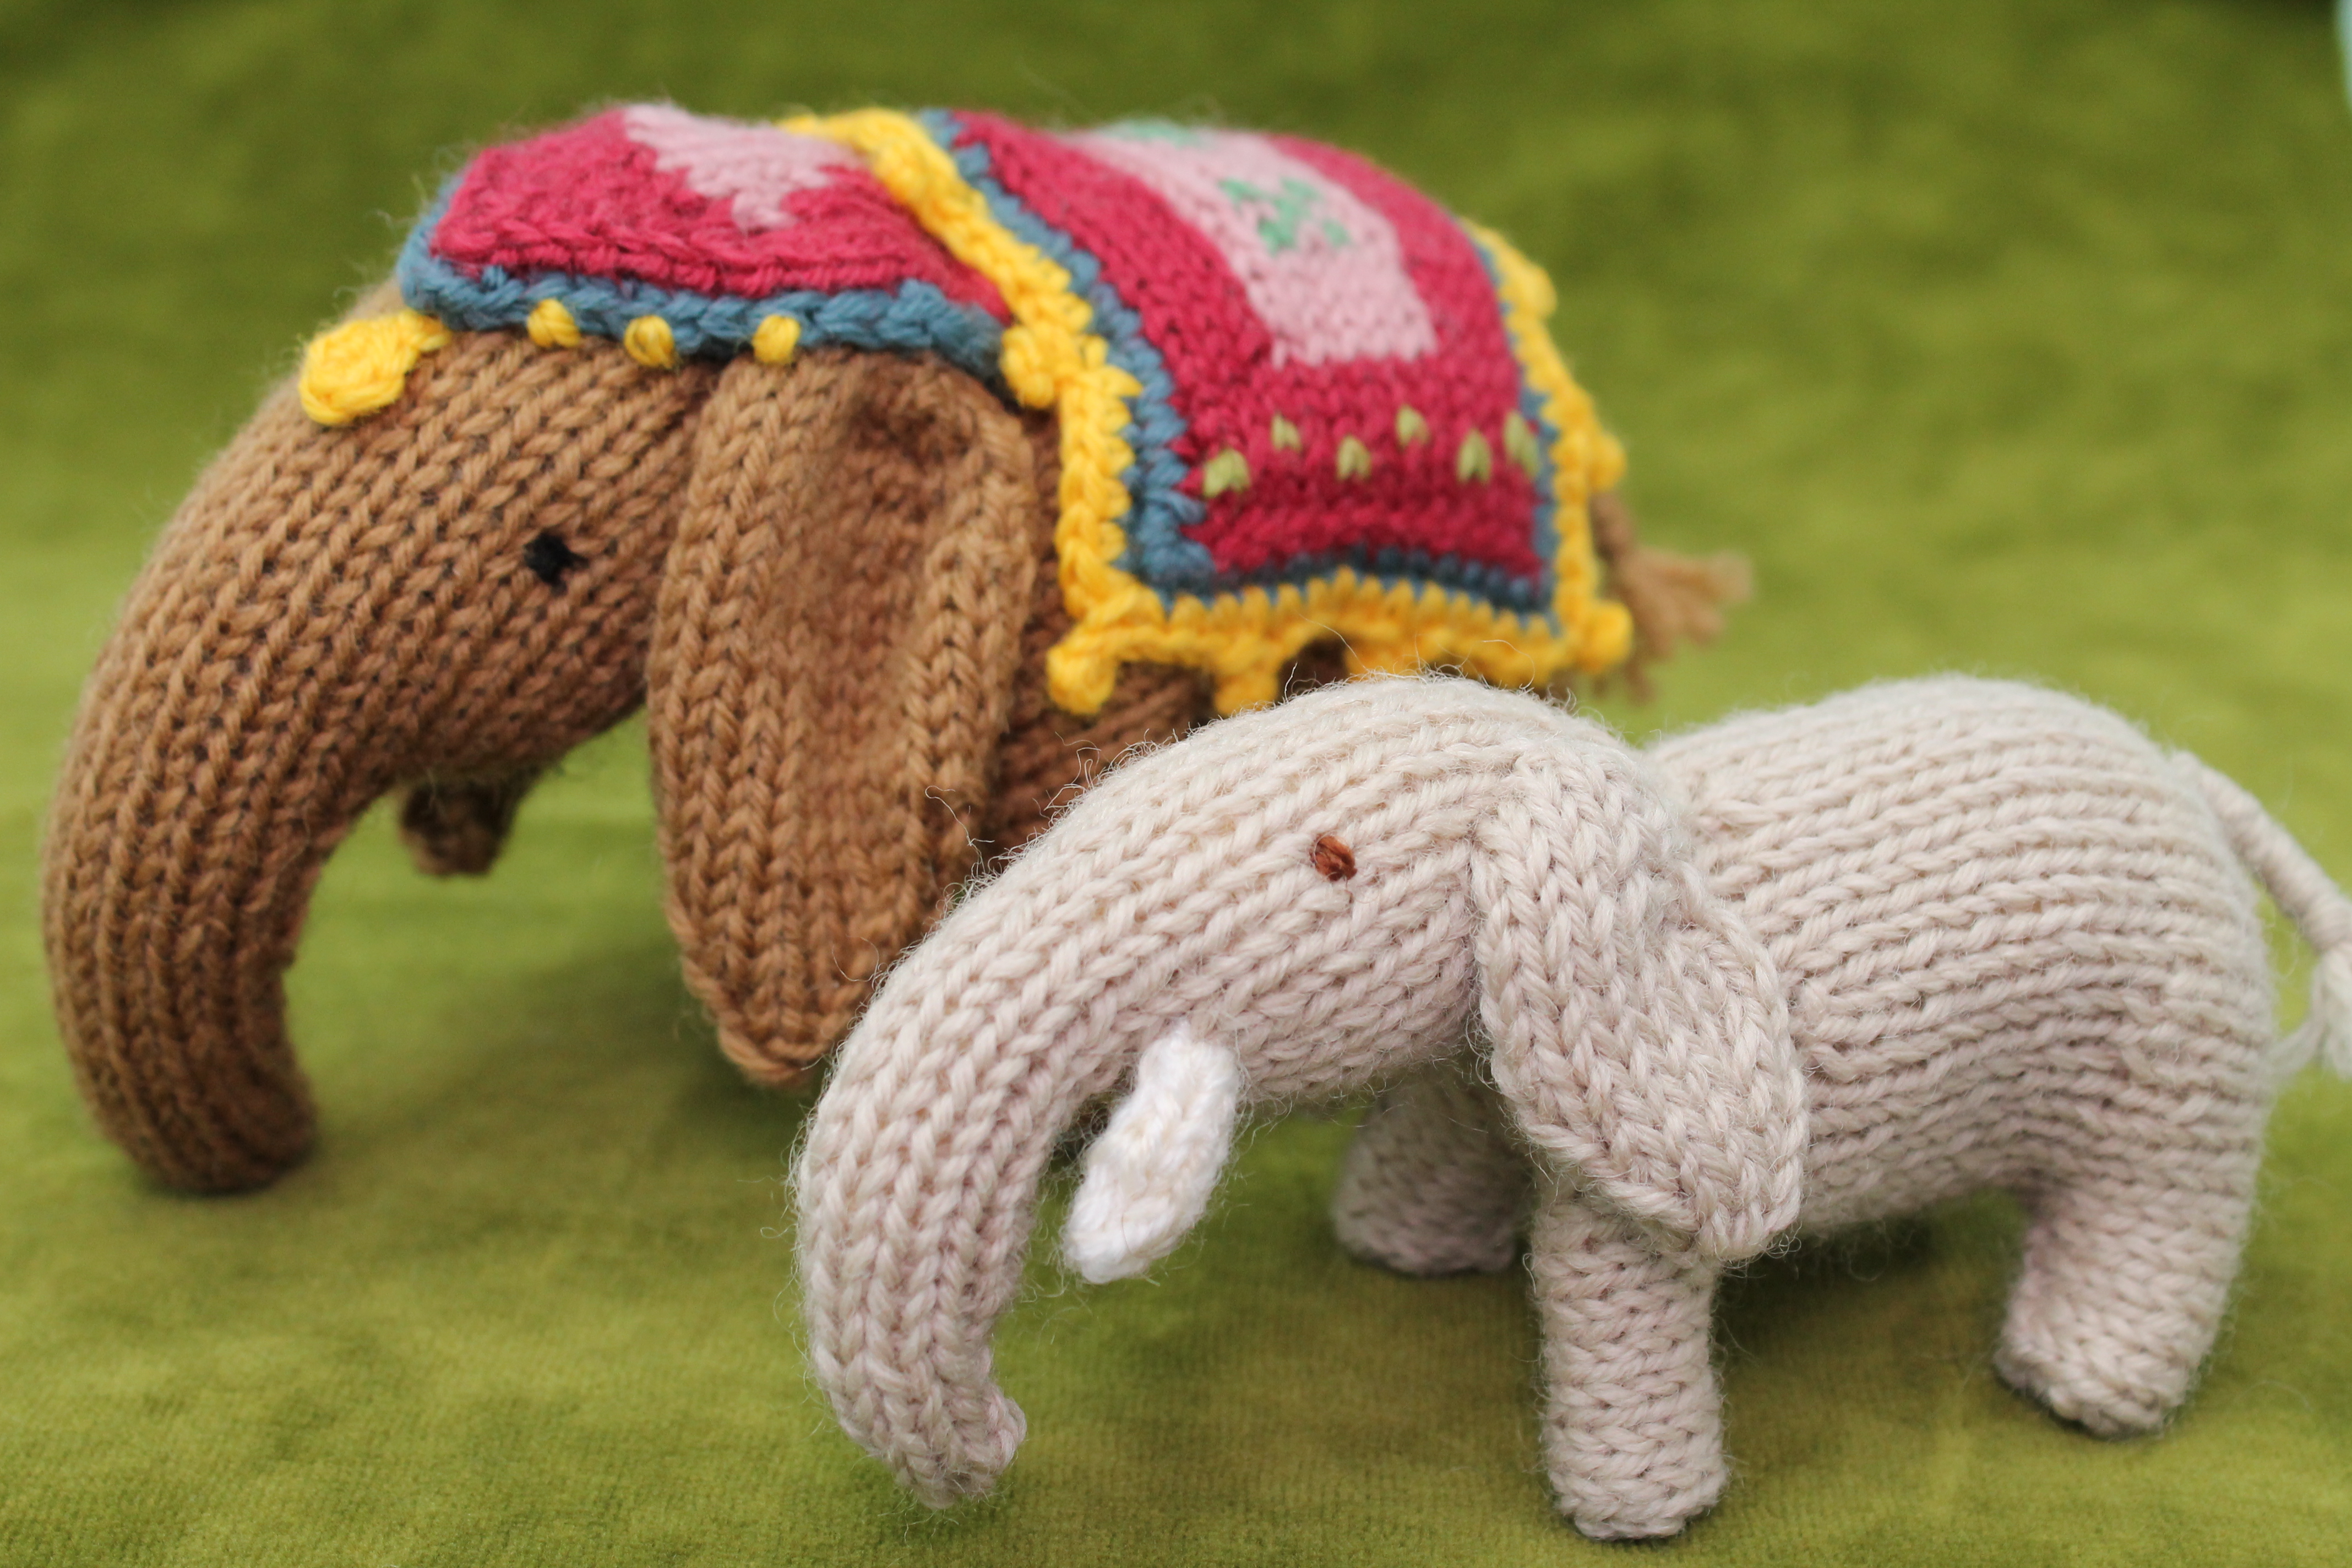 Knit toy designing tips